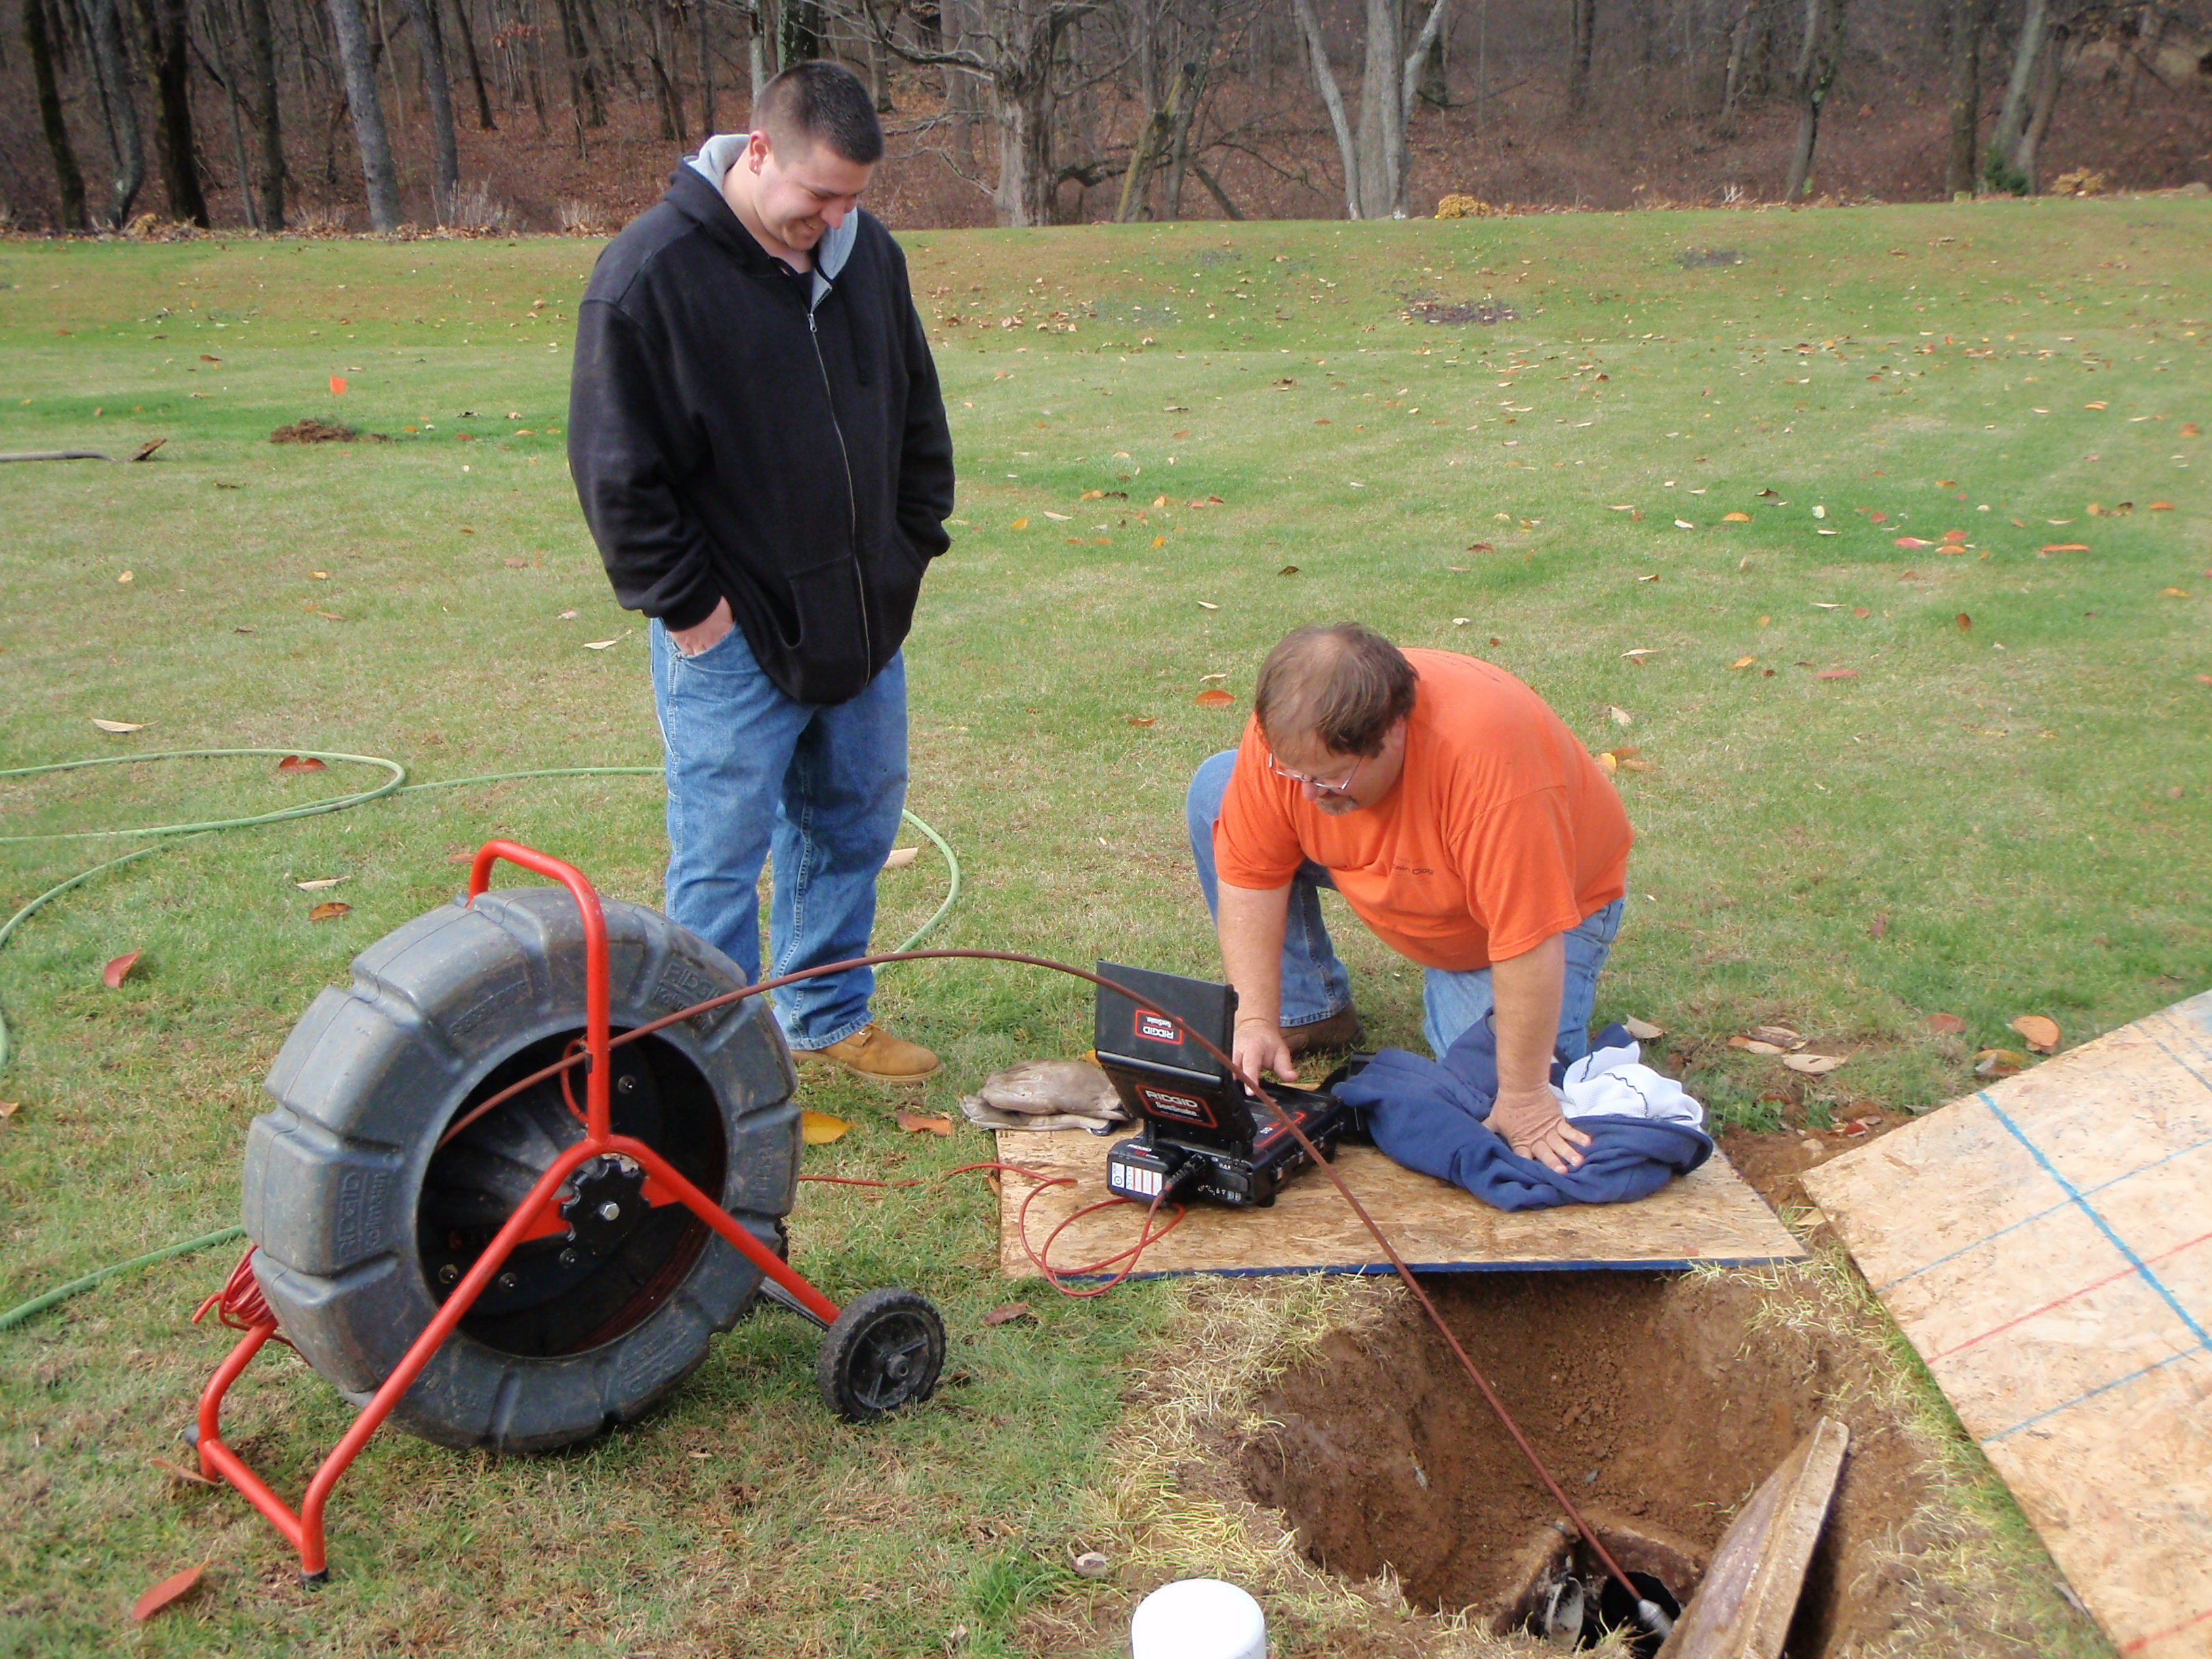 Septic drain field inspection using a sewer video camera